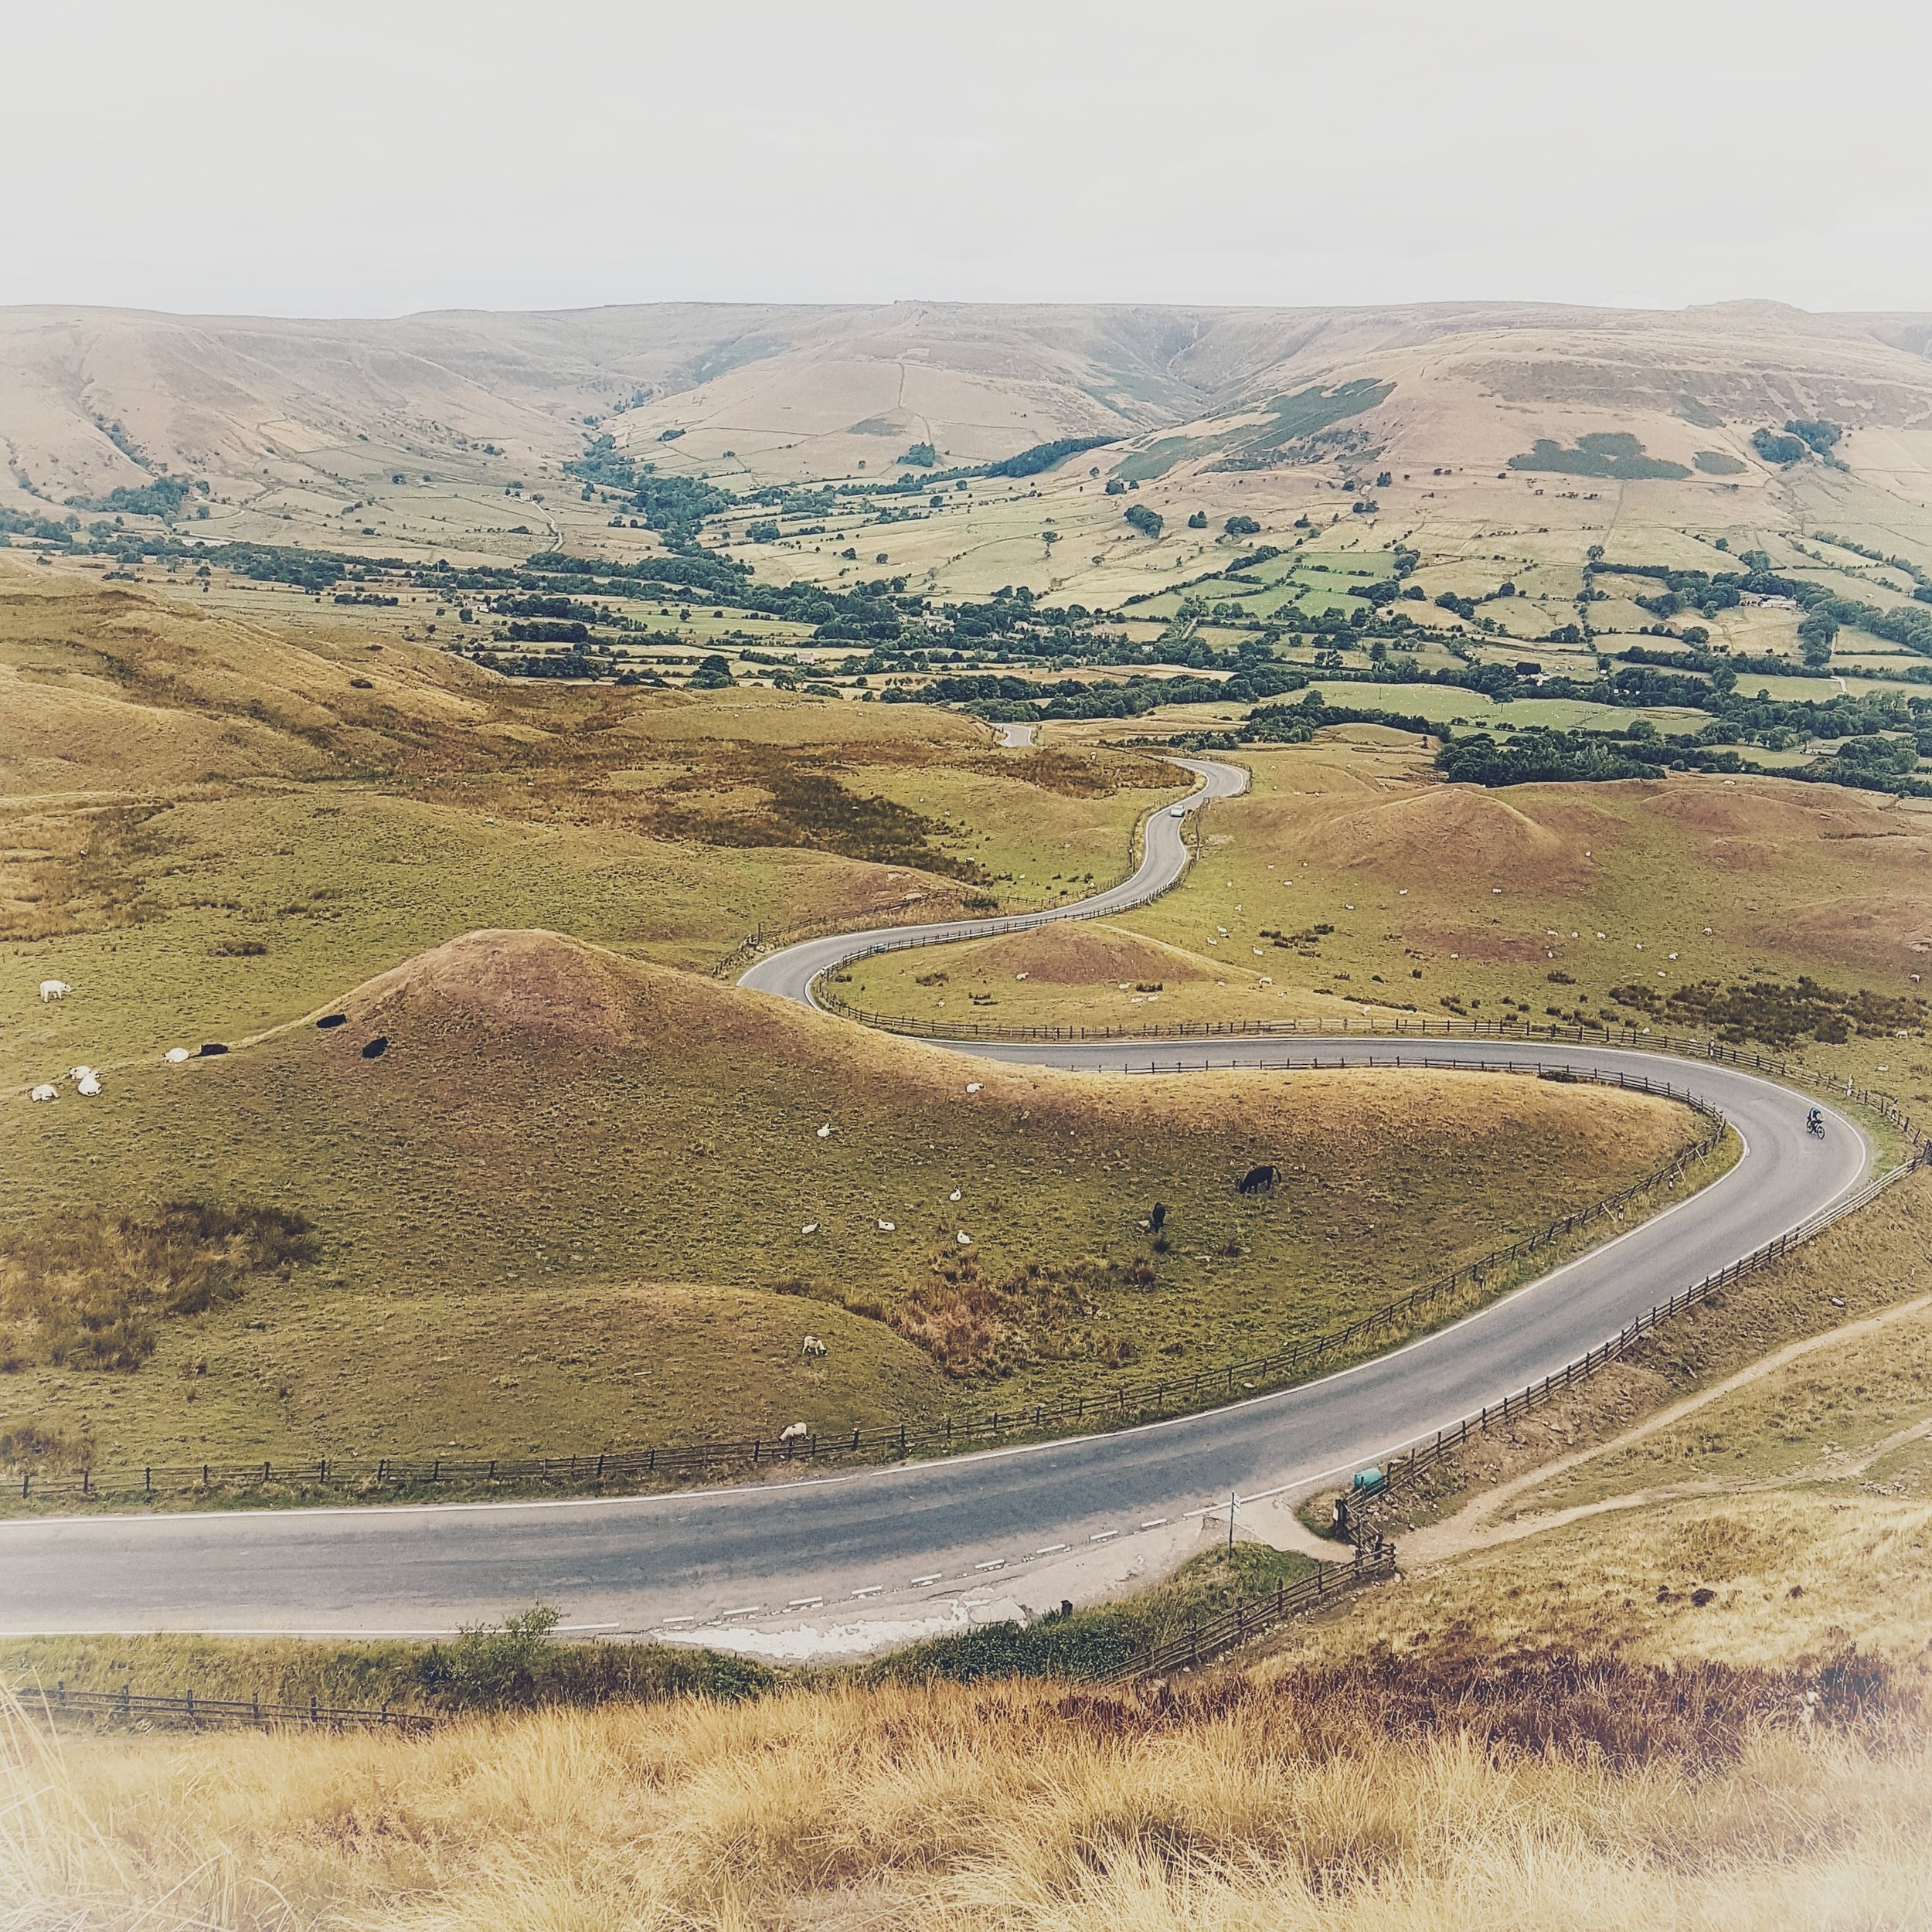 Here is a really popular viewpoint, on the hike up to the top of Mam Tor. This image shows the winding road into the village of Edale and in the far distance the  Kinder Plateau  and the start of the  Pennine Way , which forms part of the UK's trail network.  It is a impressive sight. Good to travel down, but harder to travel up. Especially if you decide to give it a go on your bike.